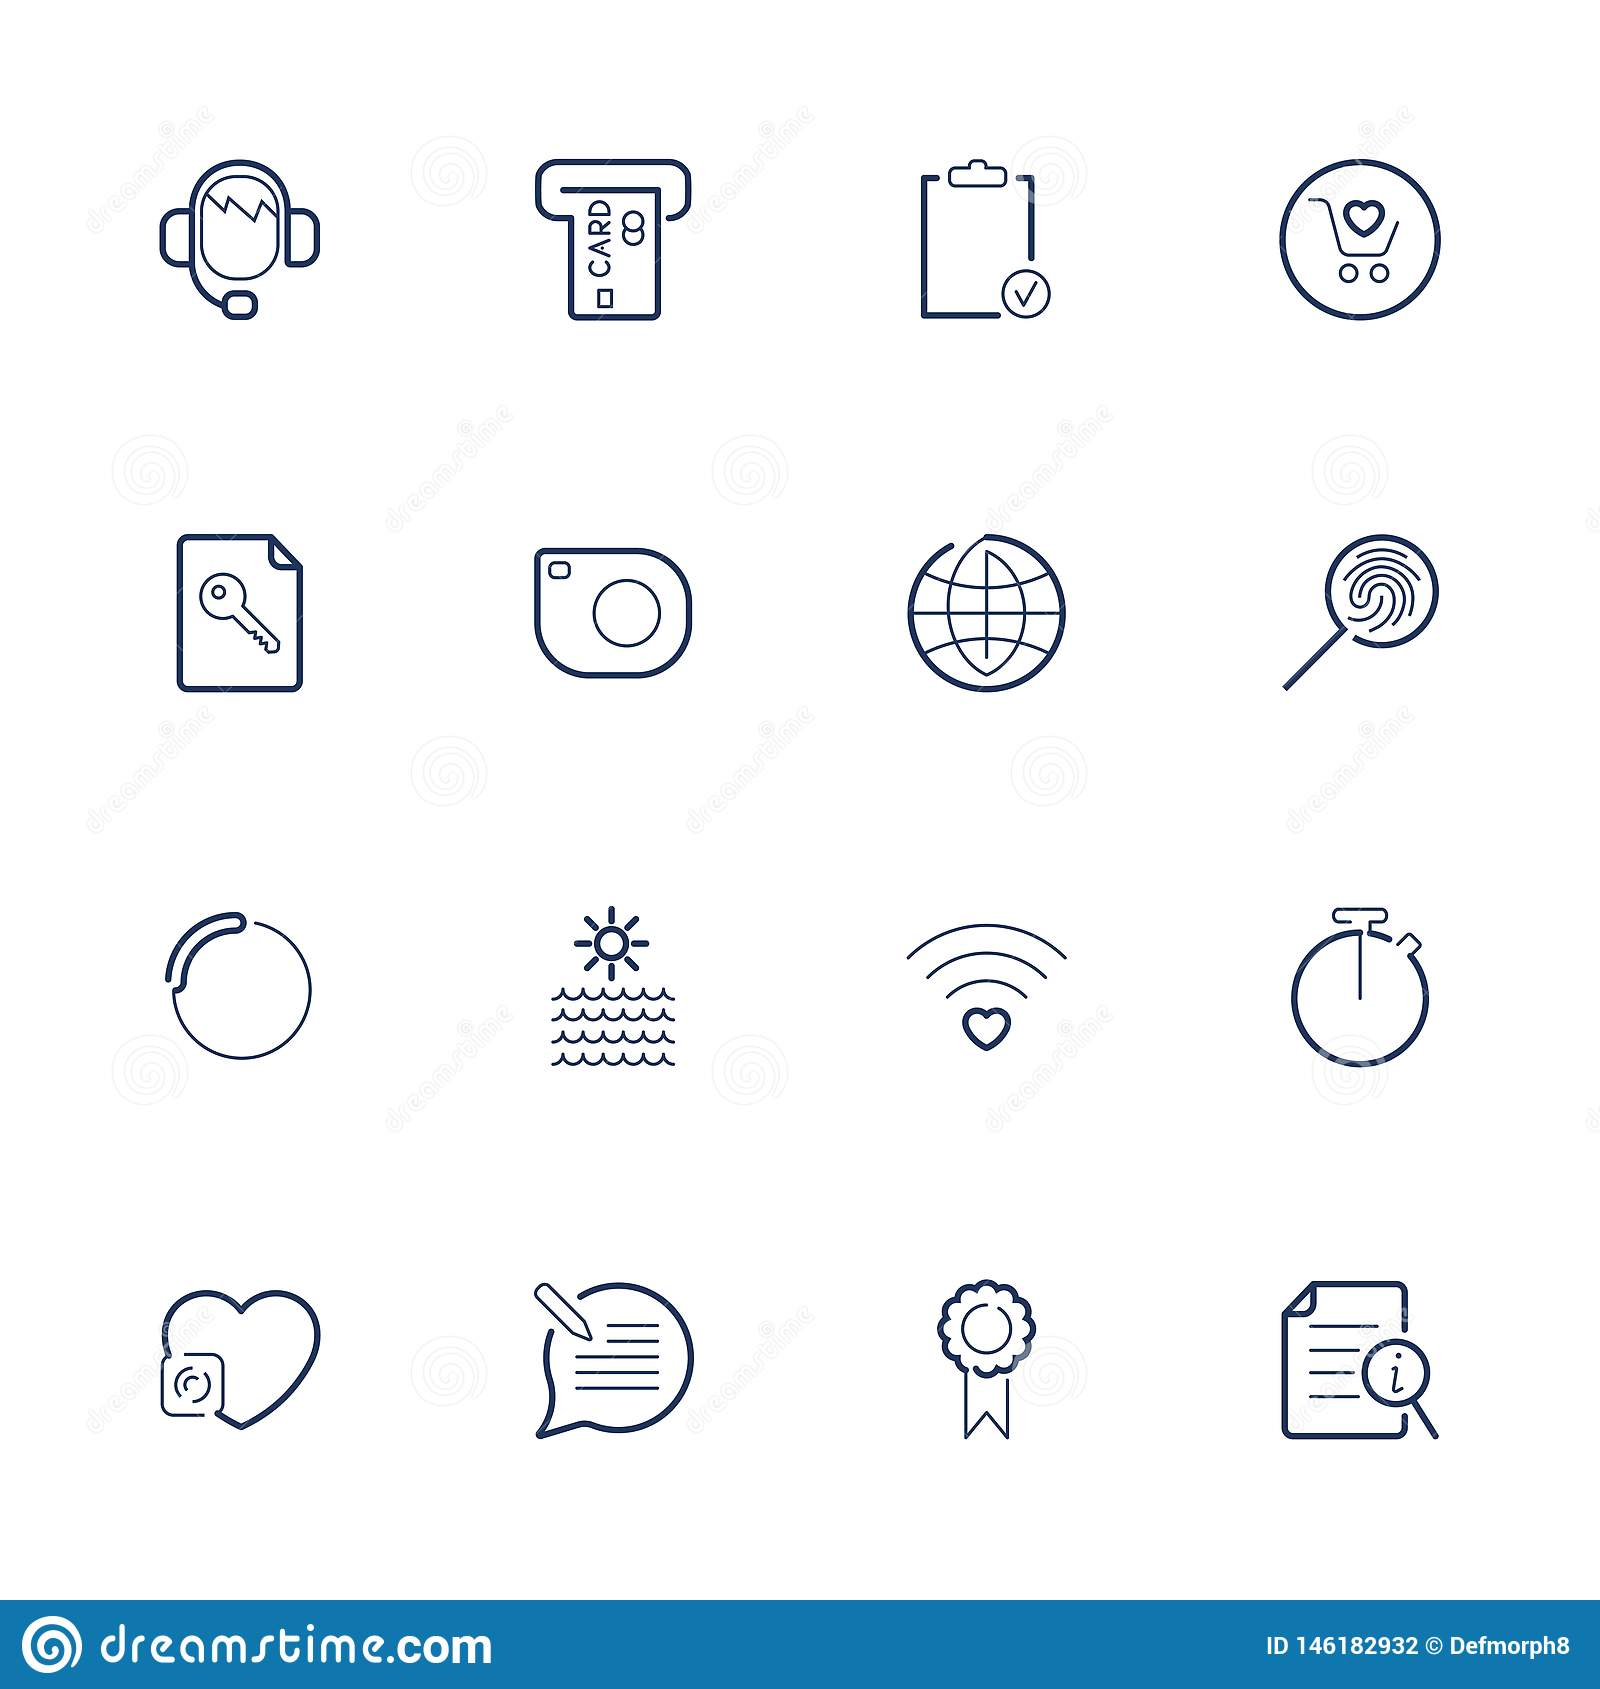 Simple different web icons. Set icons for app, programs, sites